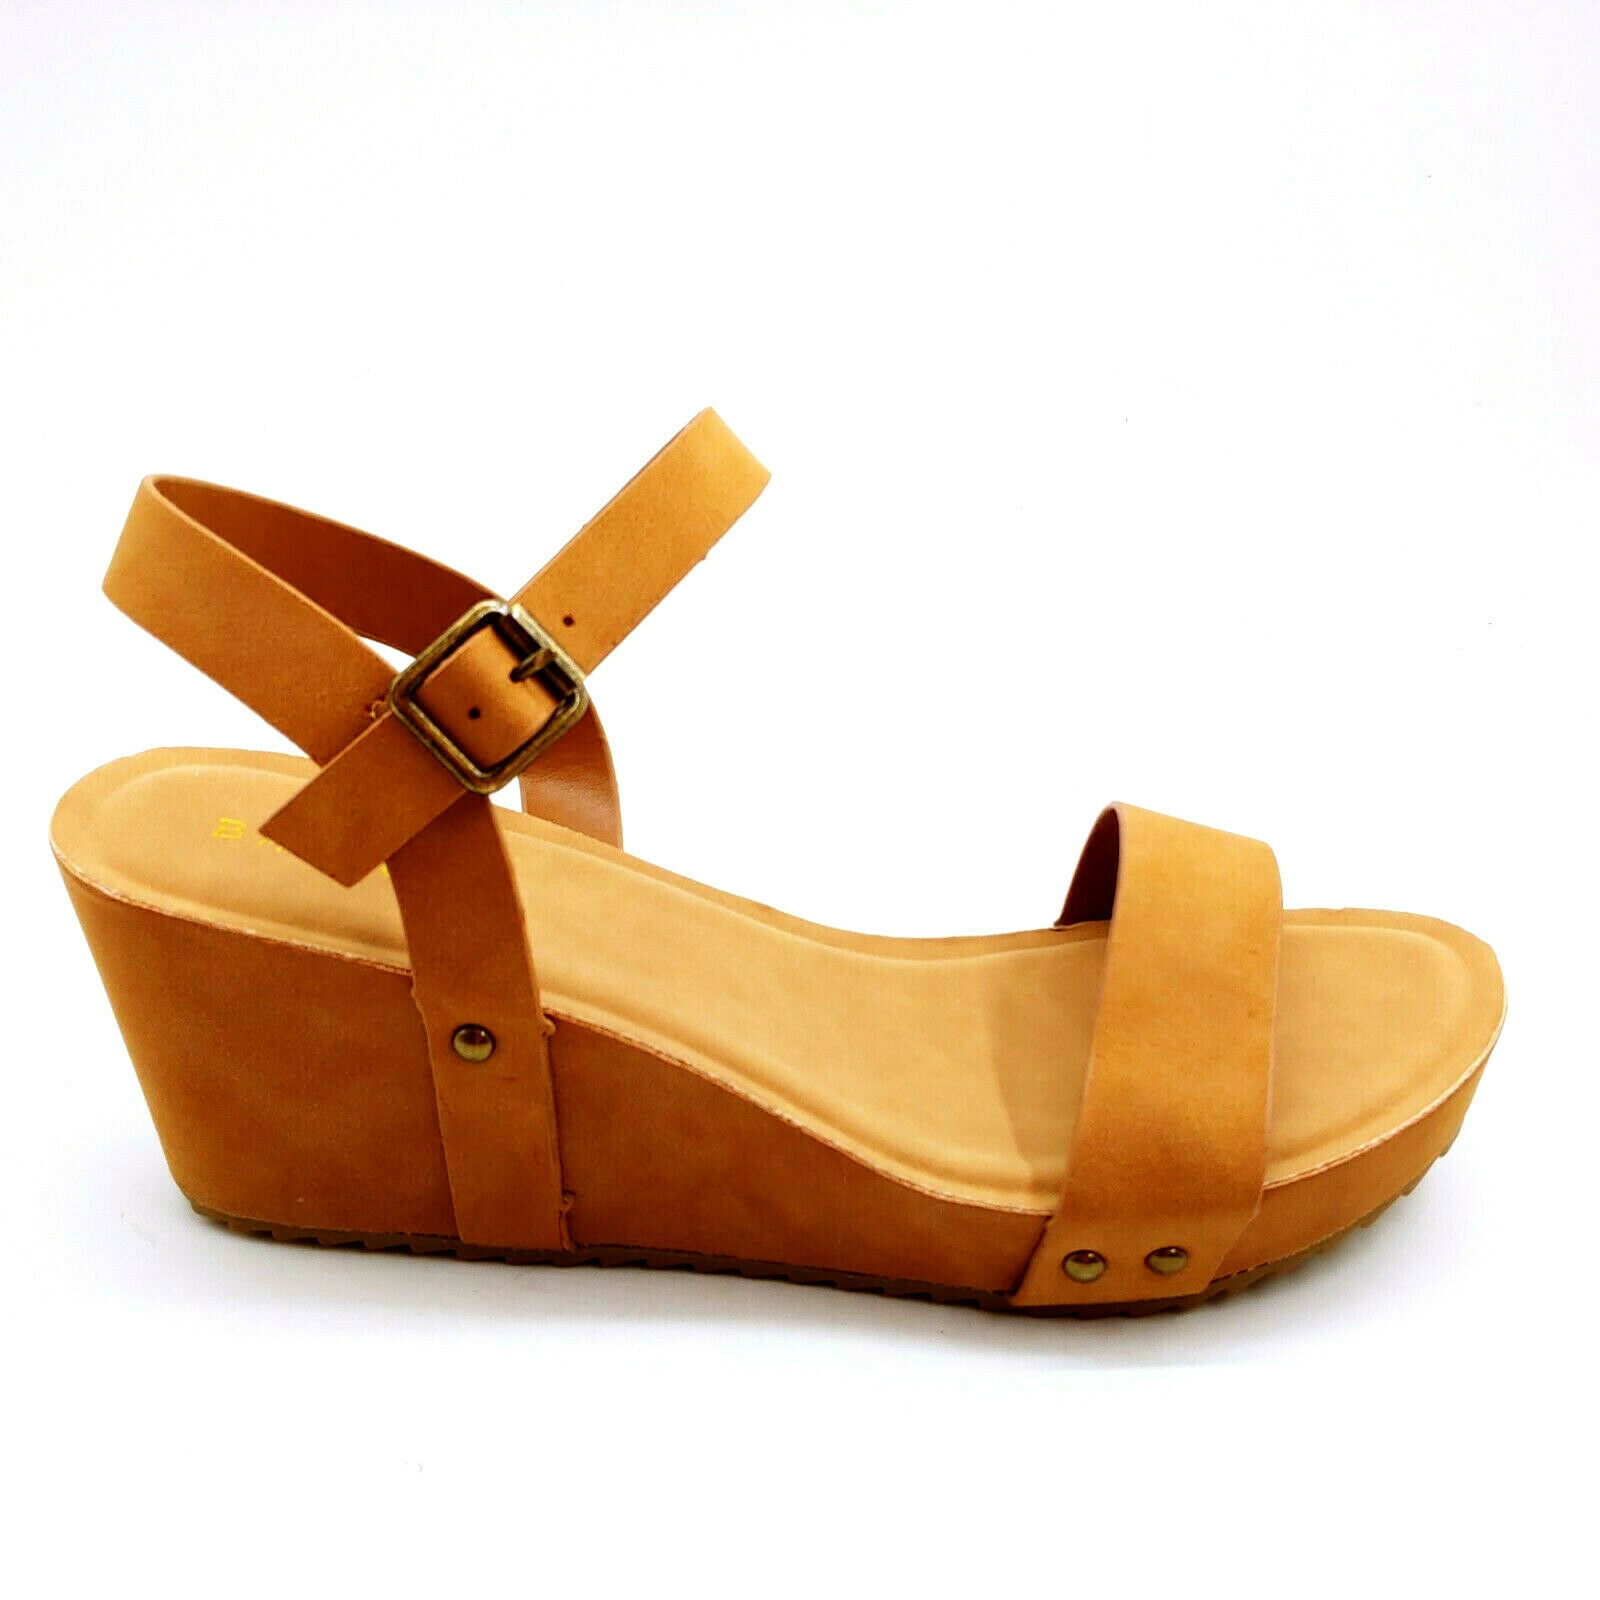 Primary image for Bamboo Womans Syrup 03 Wedge Heel Ankle Strap Sandal Tan Cushioned Sz 10 M NEW